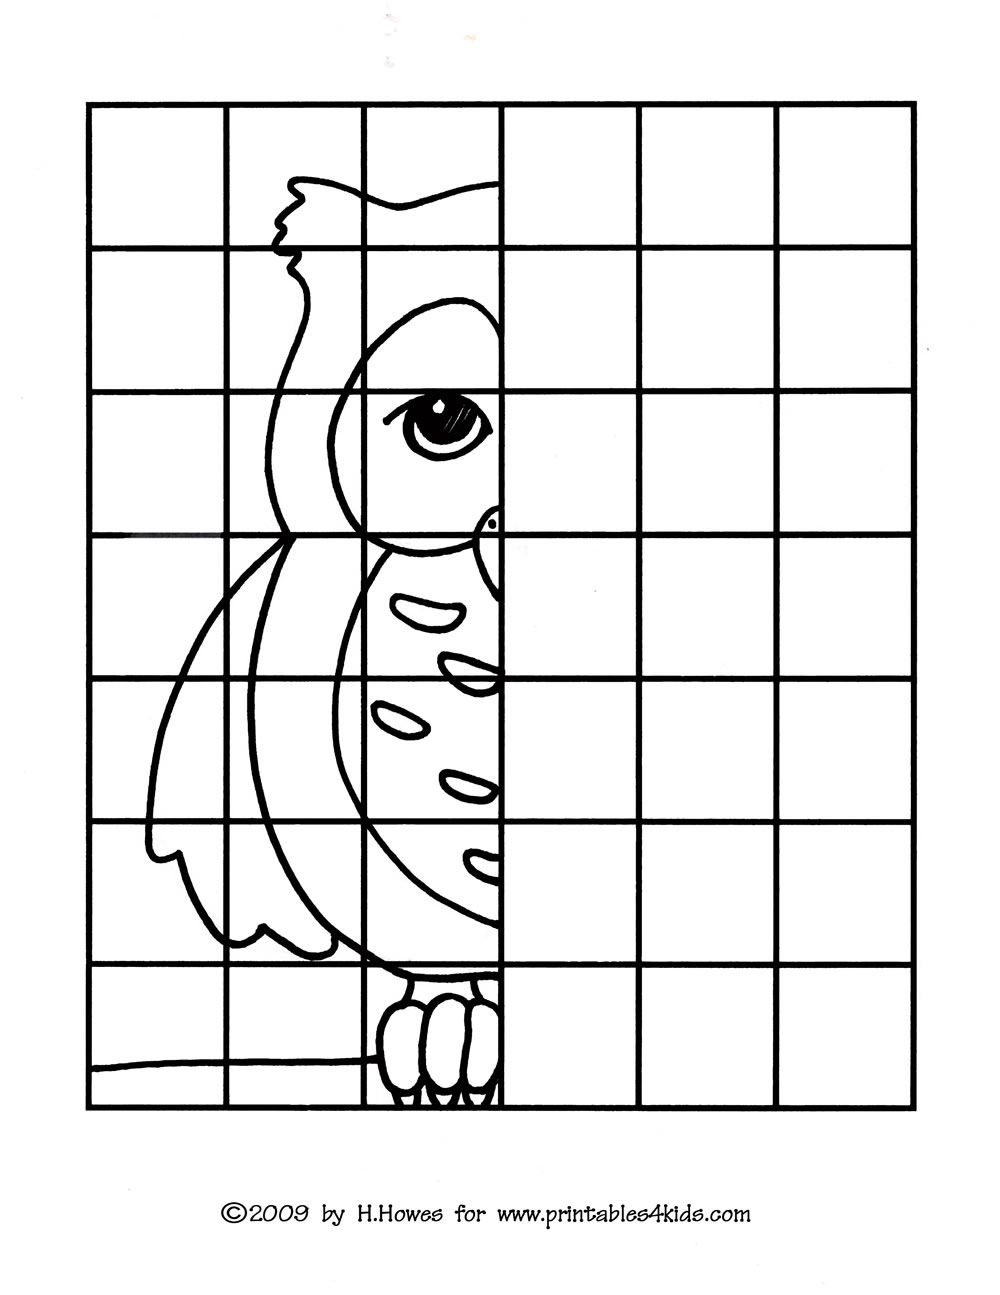 Drawing Lines Maths : Owl complete the picture drawing printables for kids